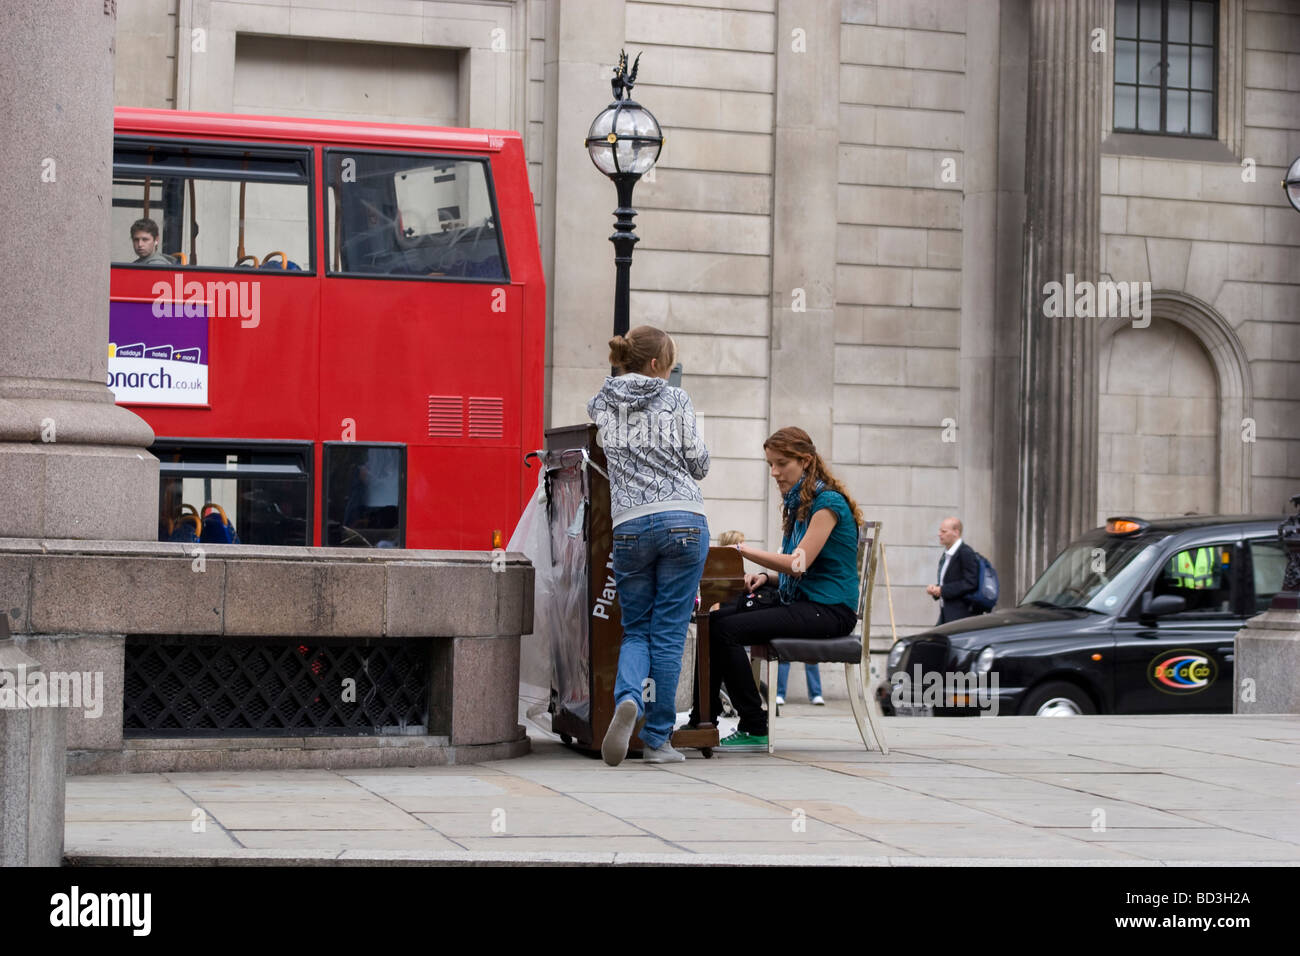 One of 30 pianos placed on streets public places and train stations as an art installation threadneedle street London - Stock Image